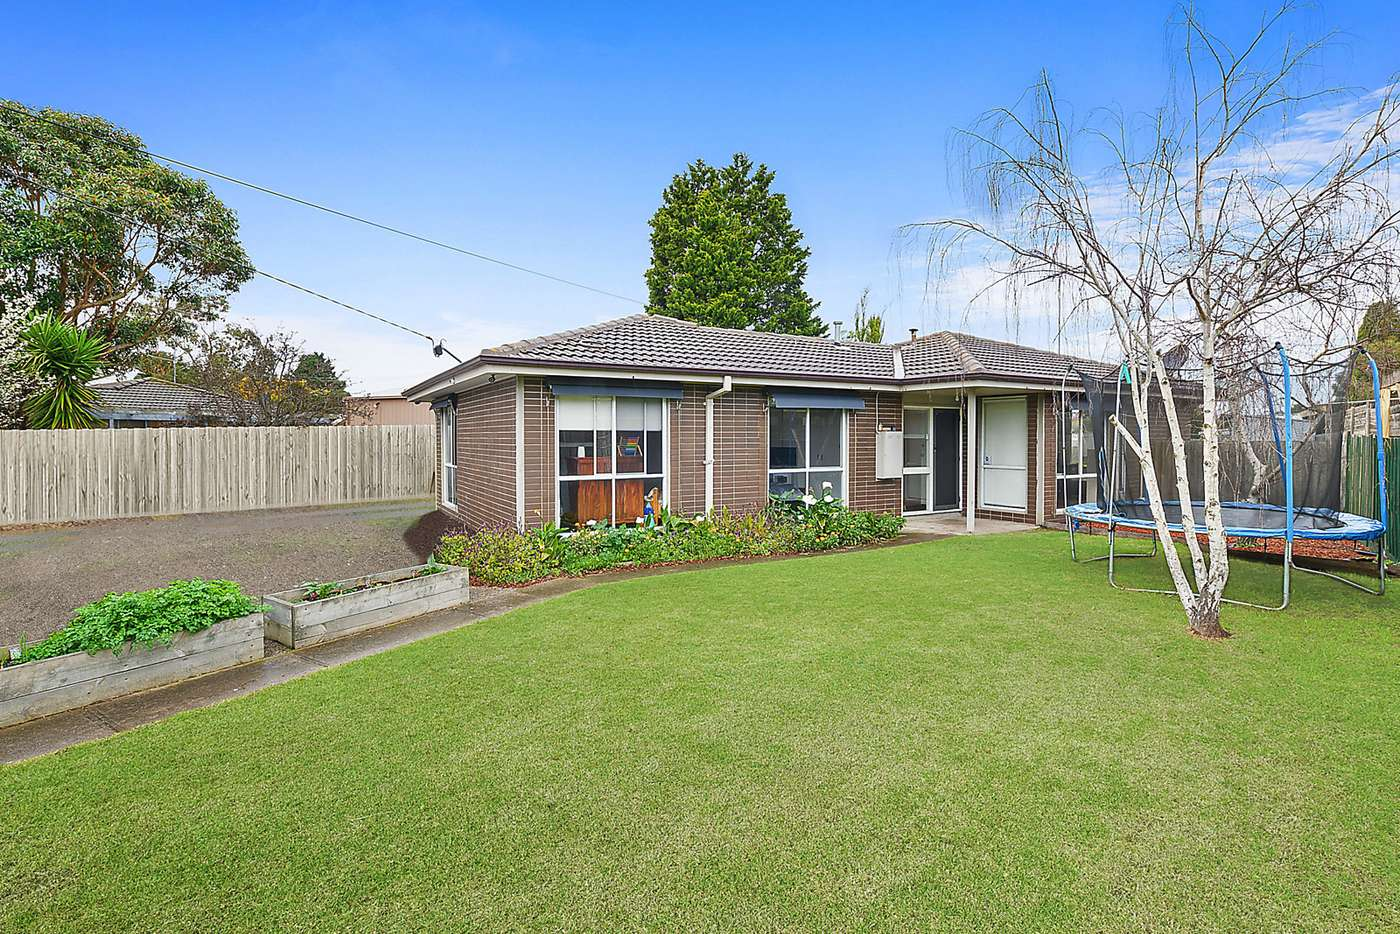 Main view of Homely house listing, 169 Solar Drive, Whittington VIC 3219